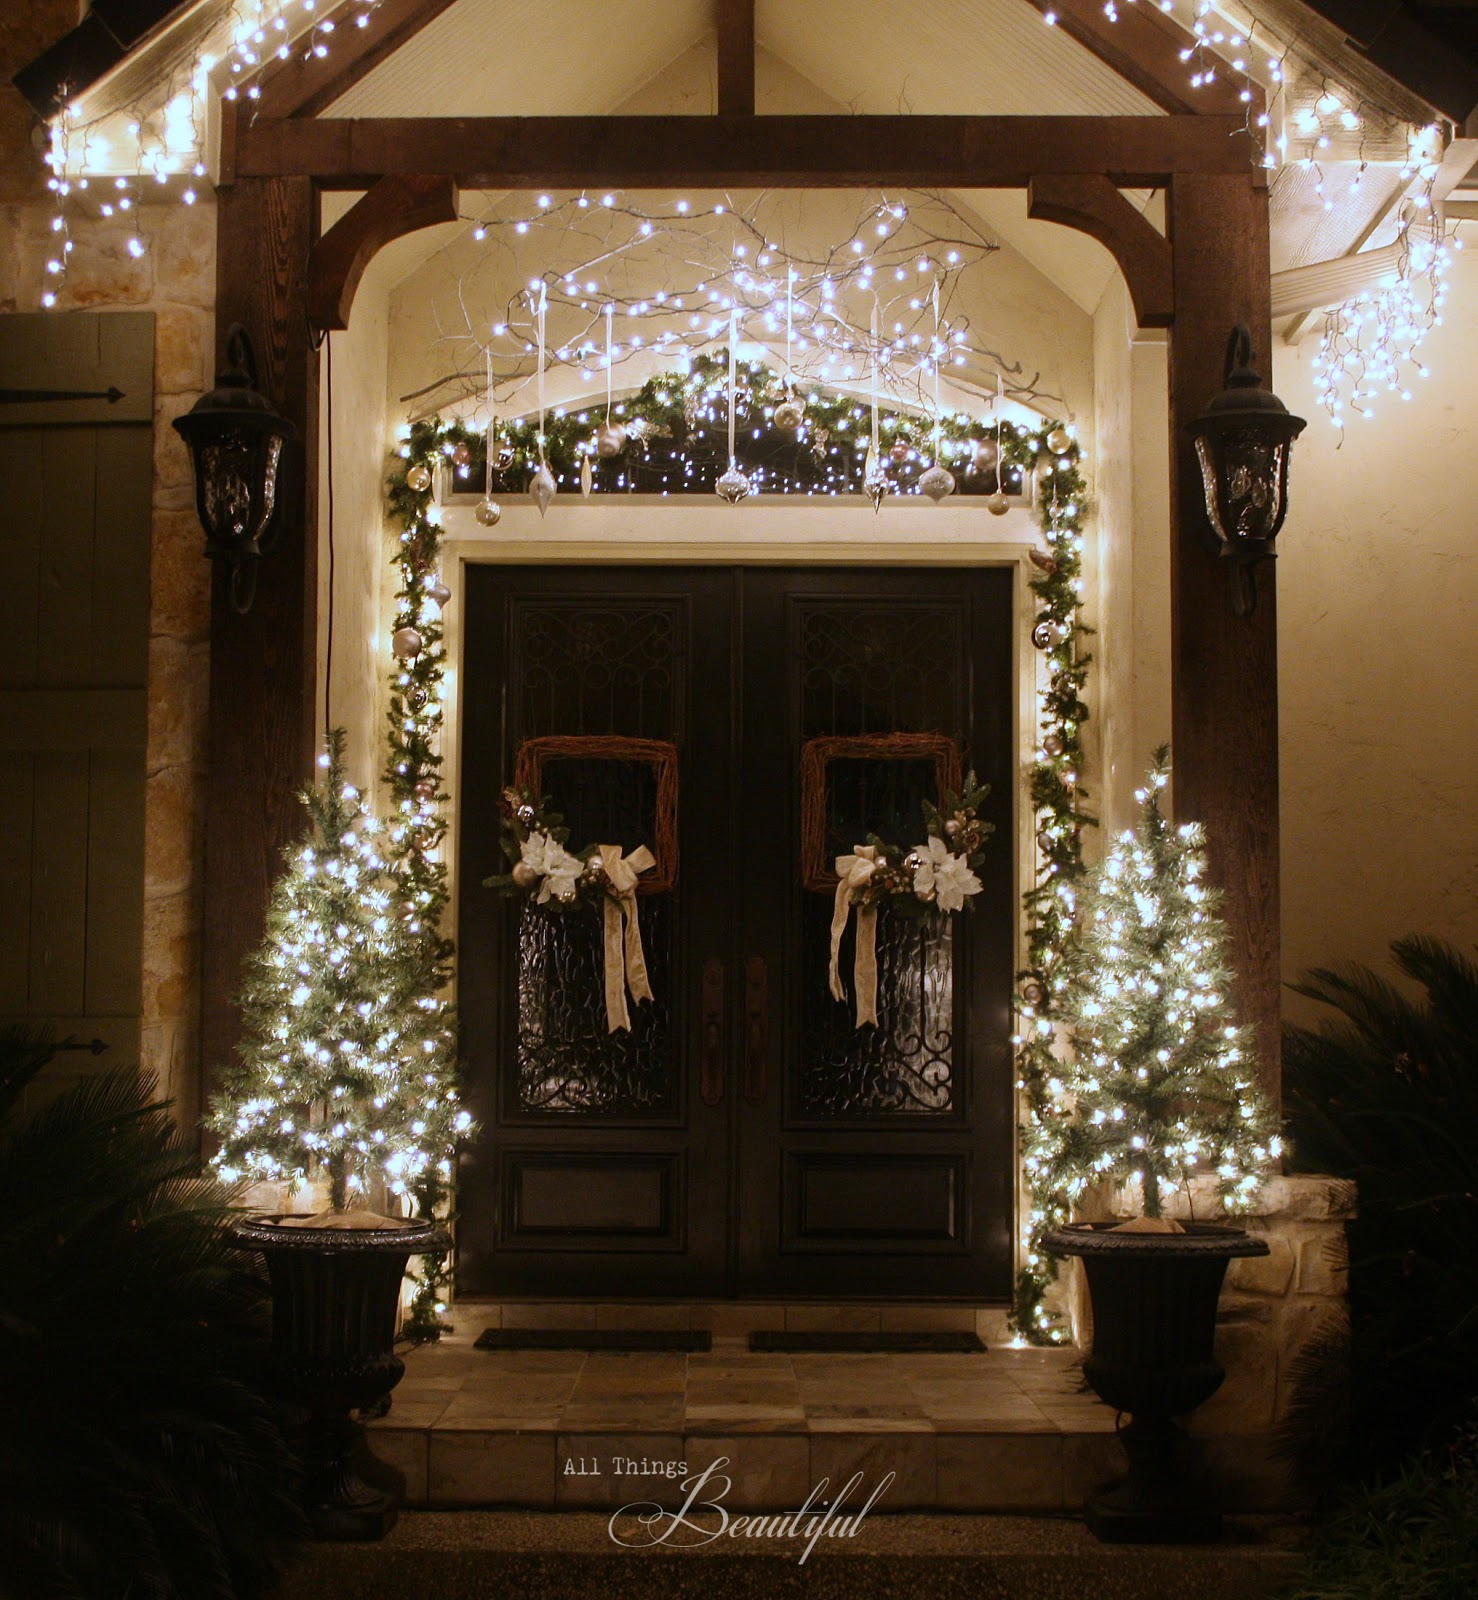 All things beautiful christmas porch garland - Christmas decorating exterior house ...